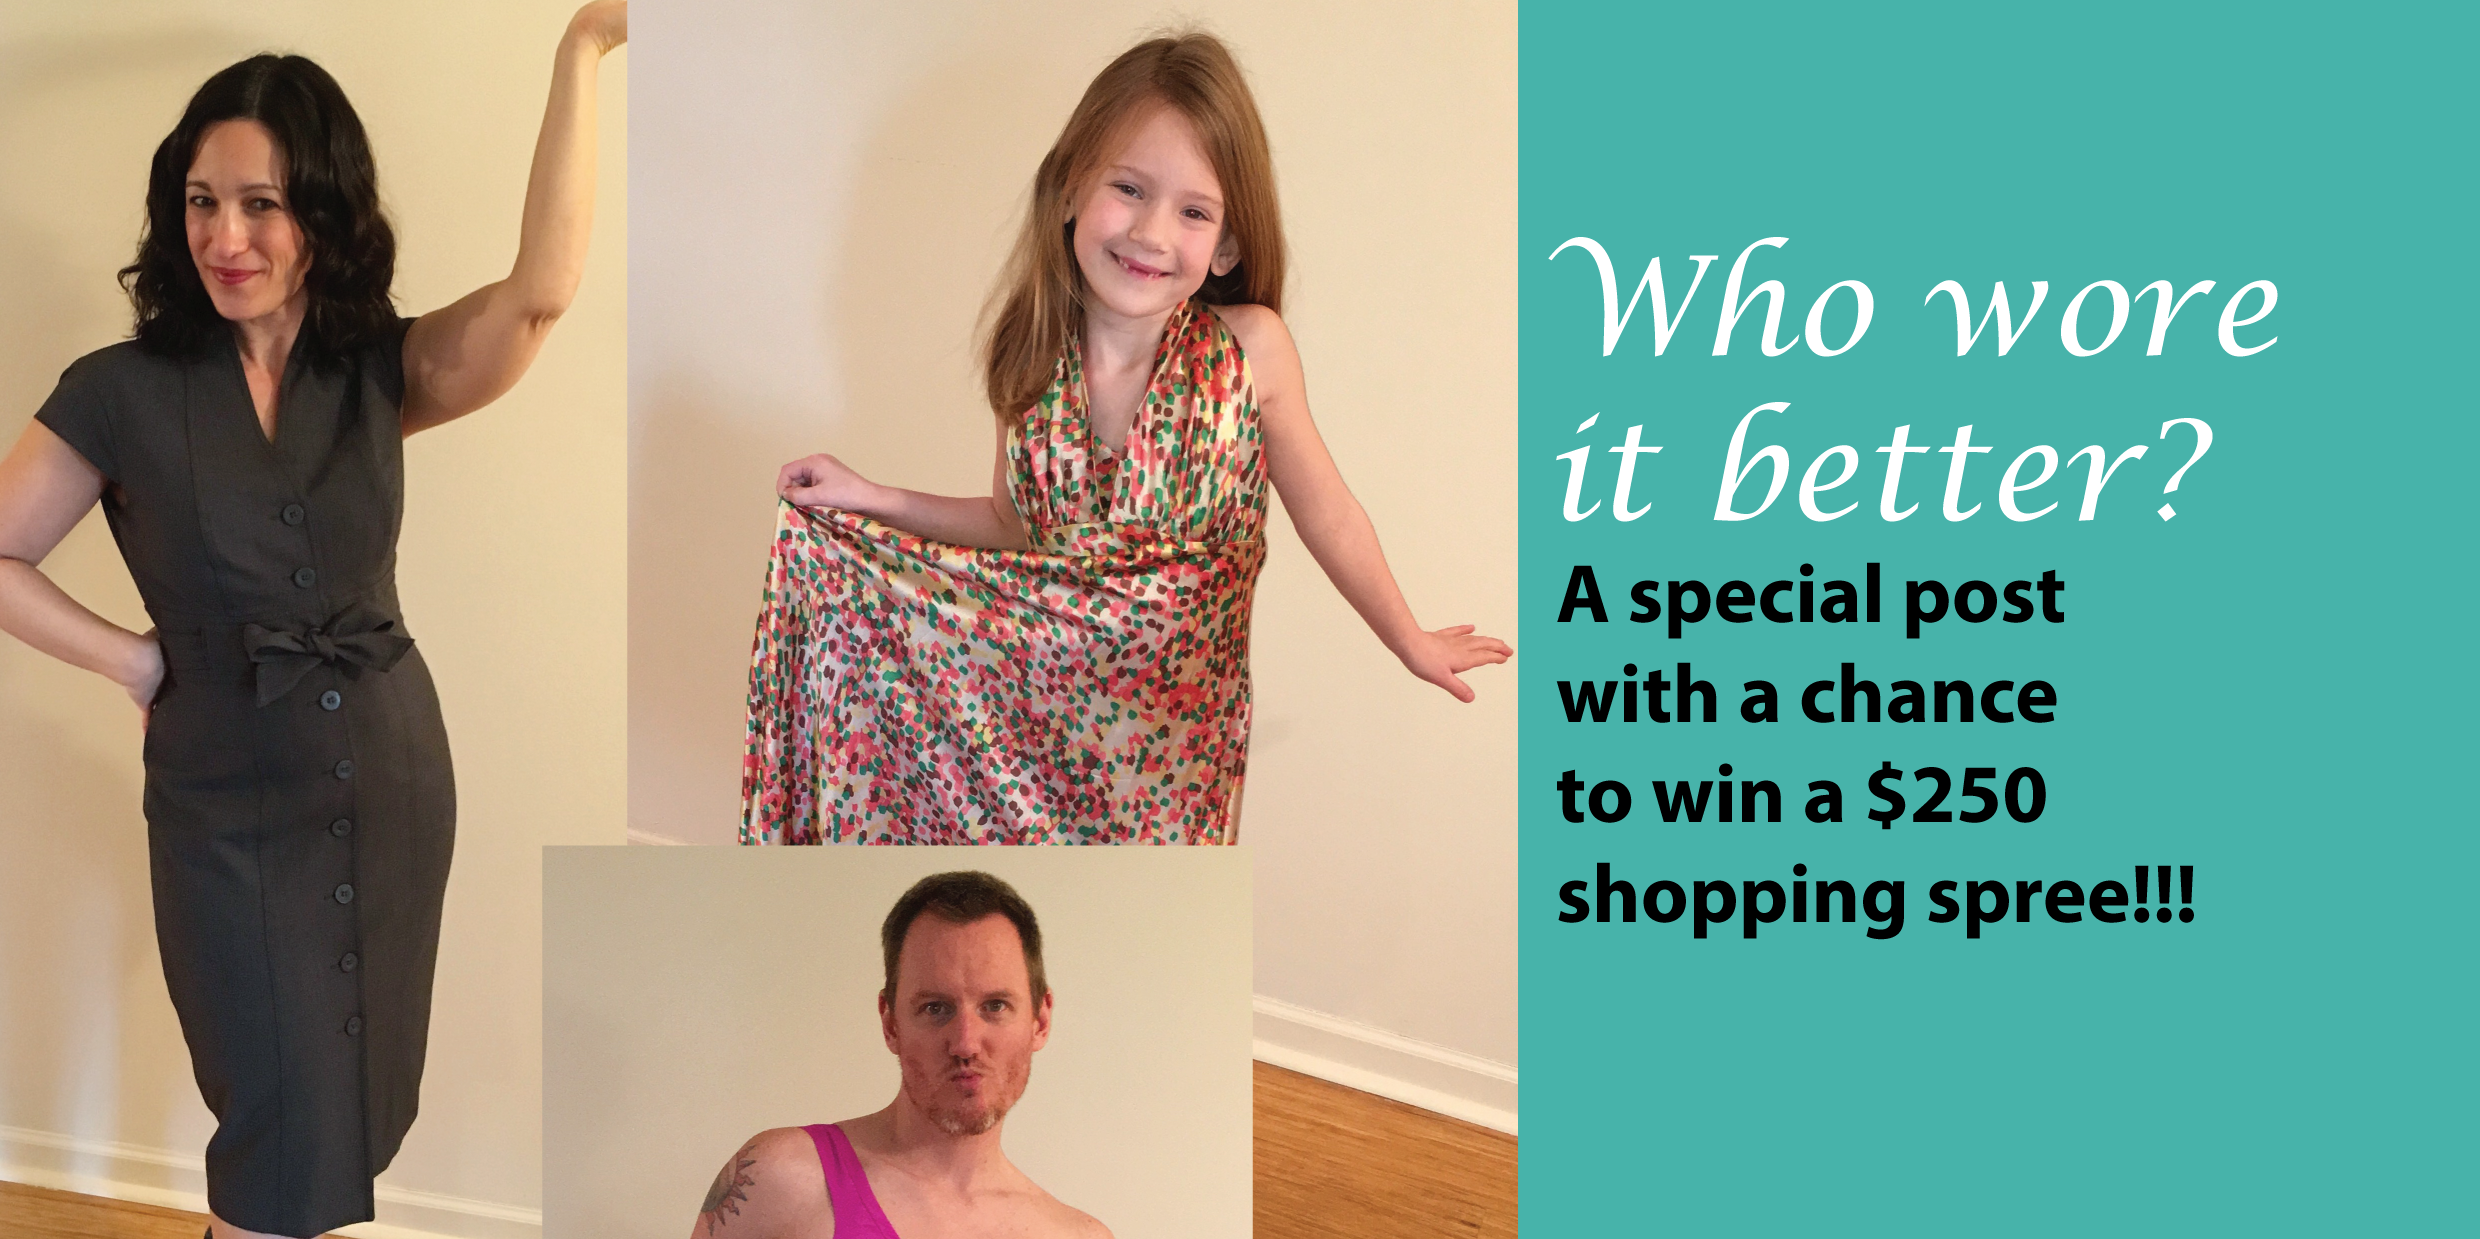 It's official, my daughter has started raiding my closet, grrrr  (you could win a $250 shopping spree!!!)